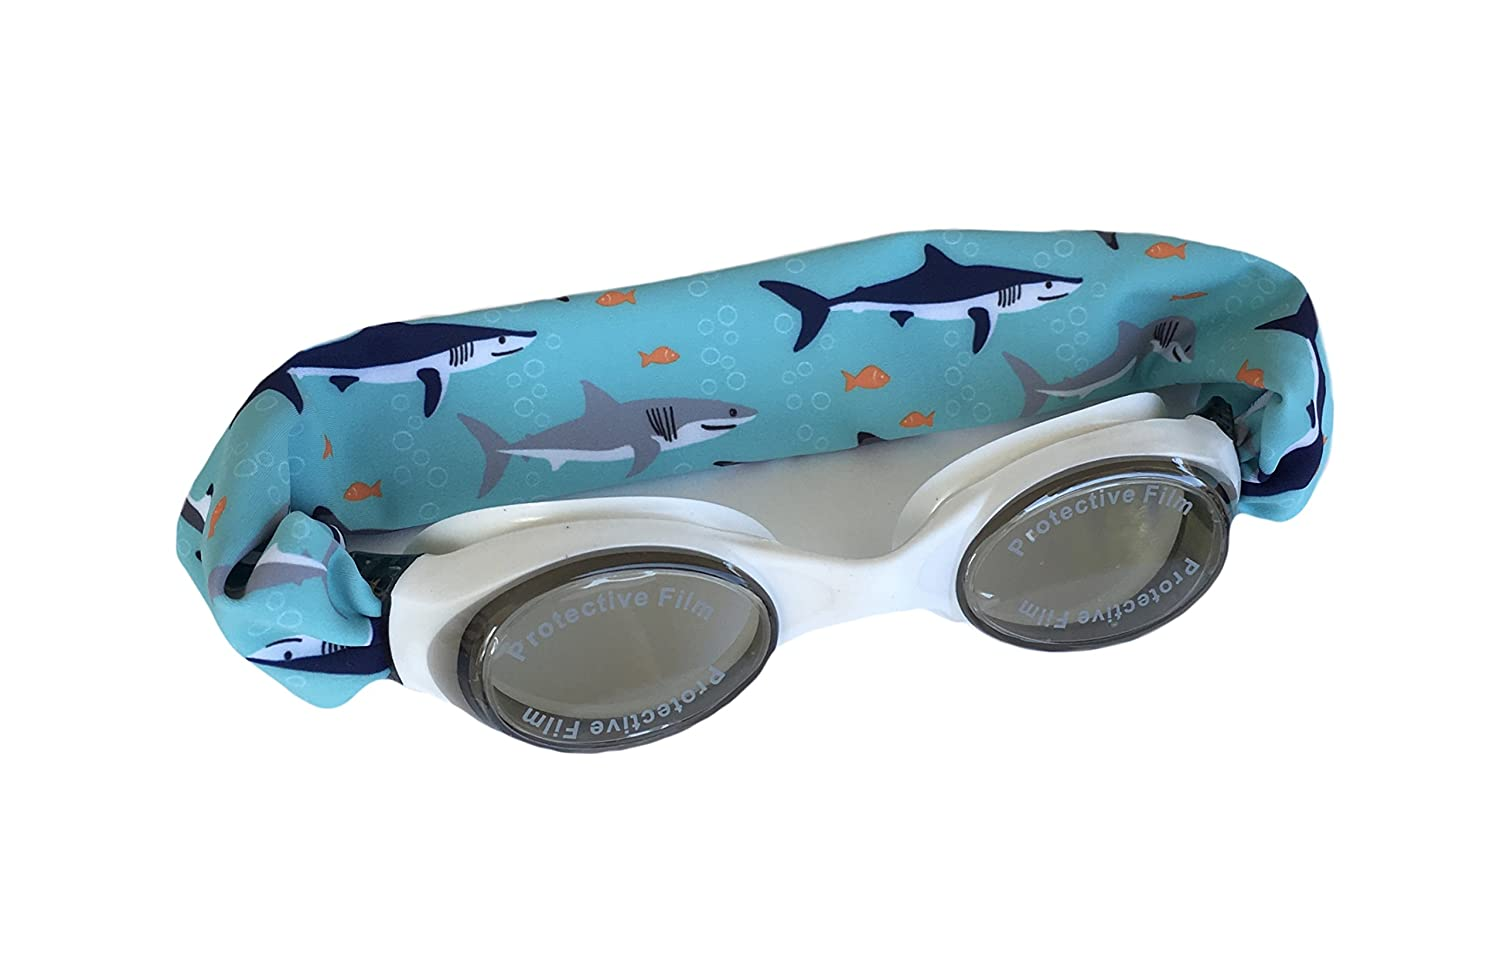 """SPLASH """"SHARK ATTACK"""" Swim Goggles - Fun Fashionable Comfortable - Fits Kids & Adults - Won't Pull Your Hair - Easy to Use - High Visibility Anti-Fog Lenses - PATENT PENDING"""